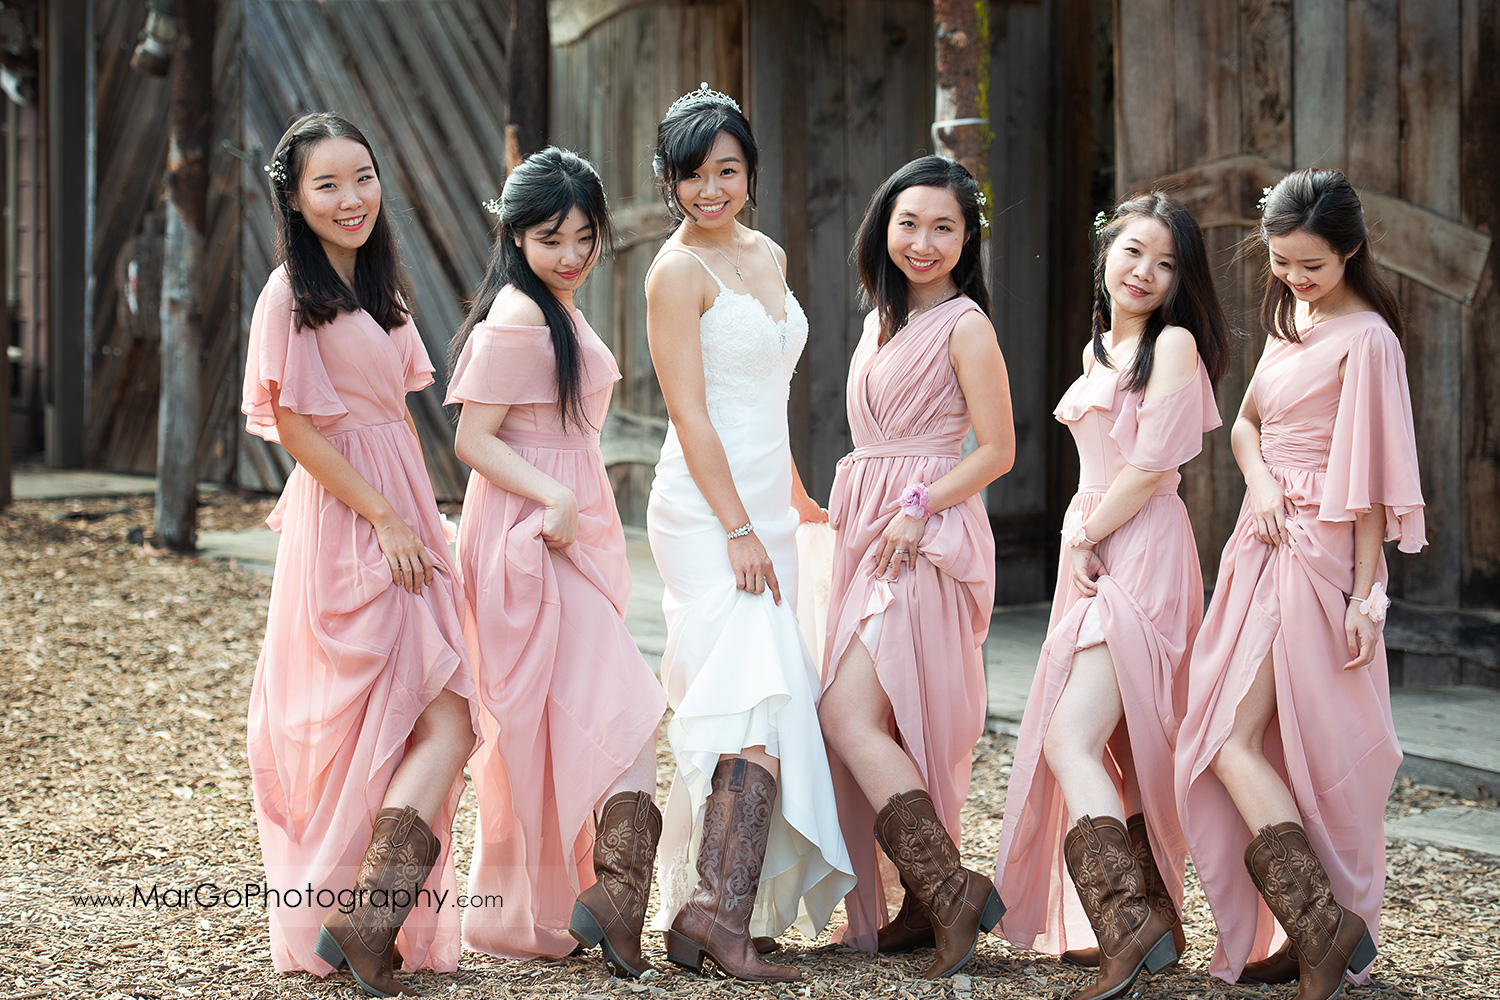 bride in white dress and bridesmaids in pink dresses showing cowboy boots at Long Branch Saloon & Farms in Half Moon Bay